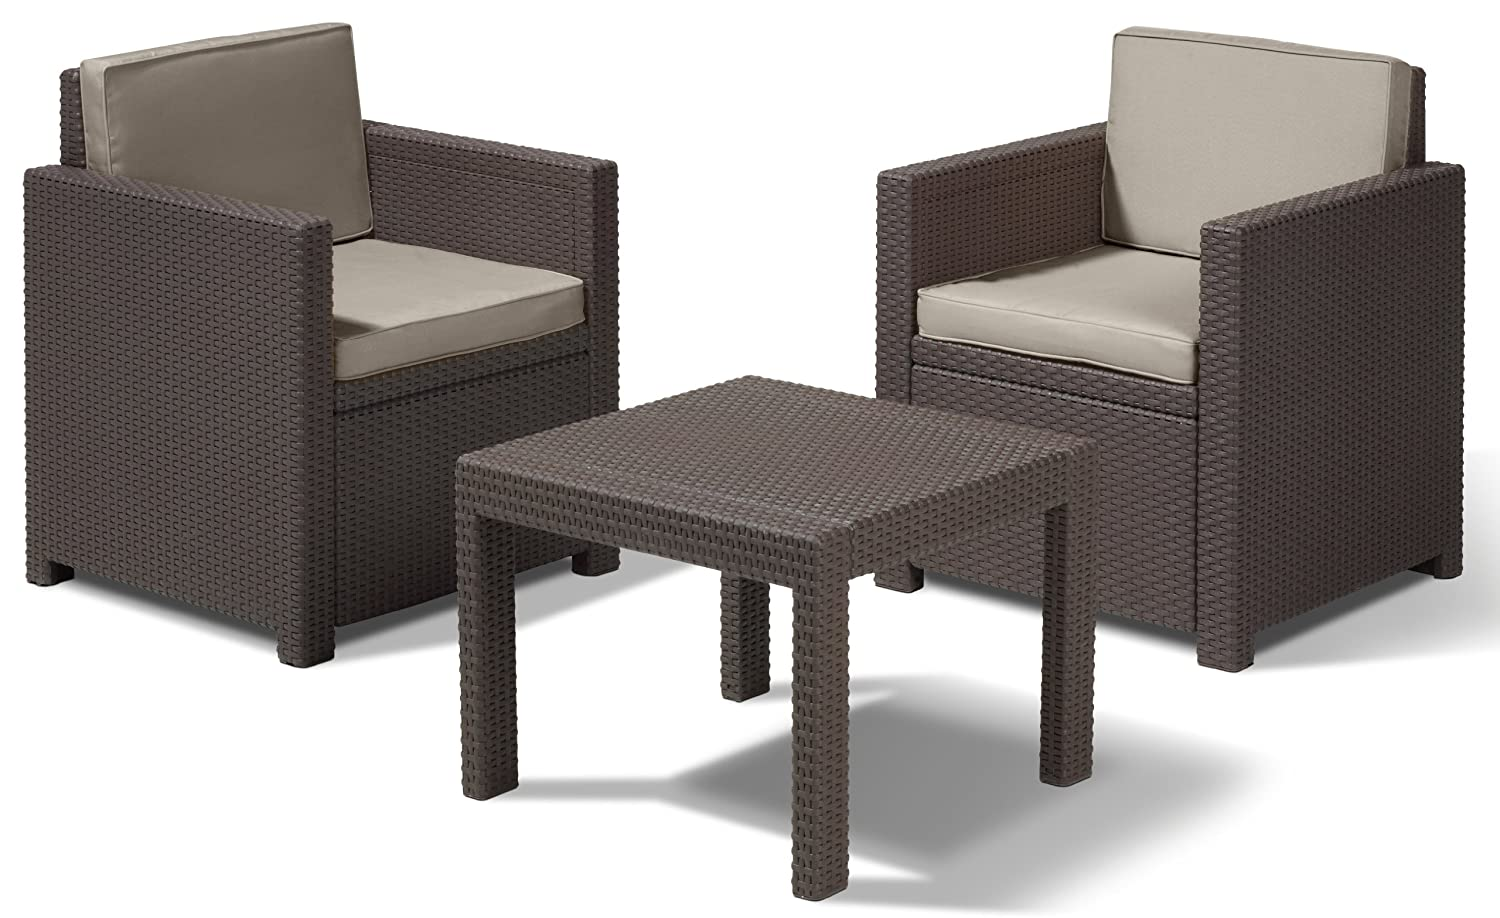 allibert lounge set victoria balcony braun 3 teilig g nstig online kaufen. Black Bedroom Furniture Sets. Home Design Ideas